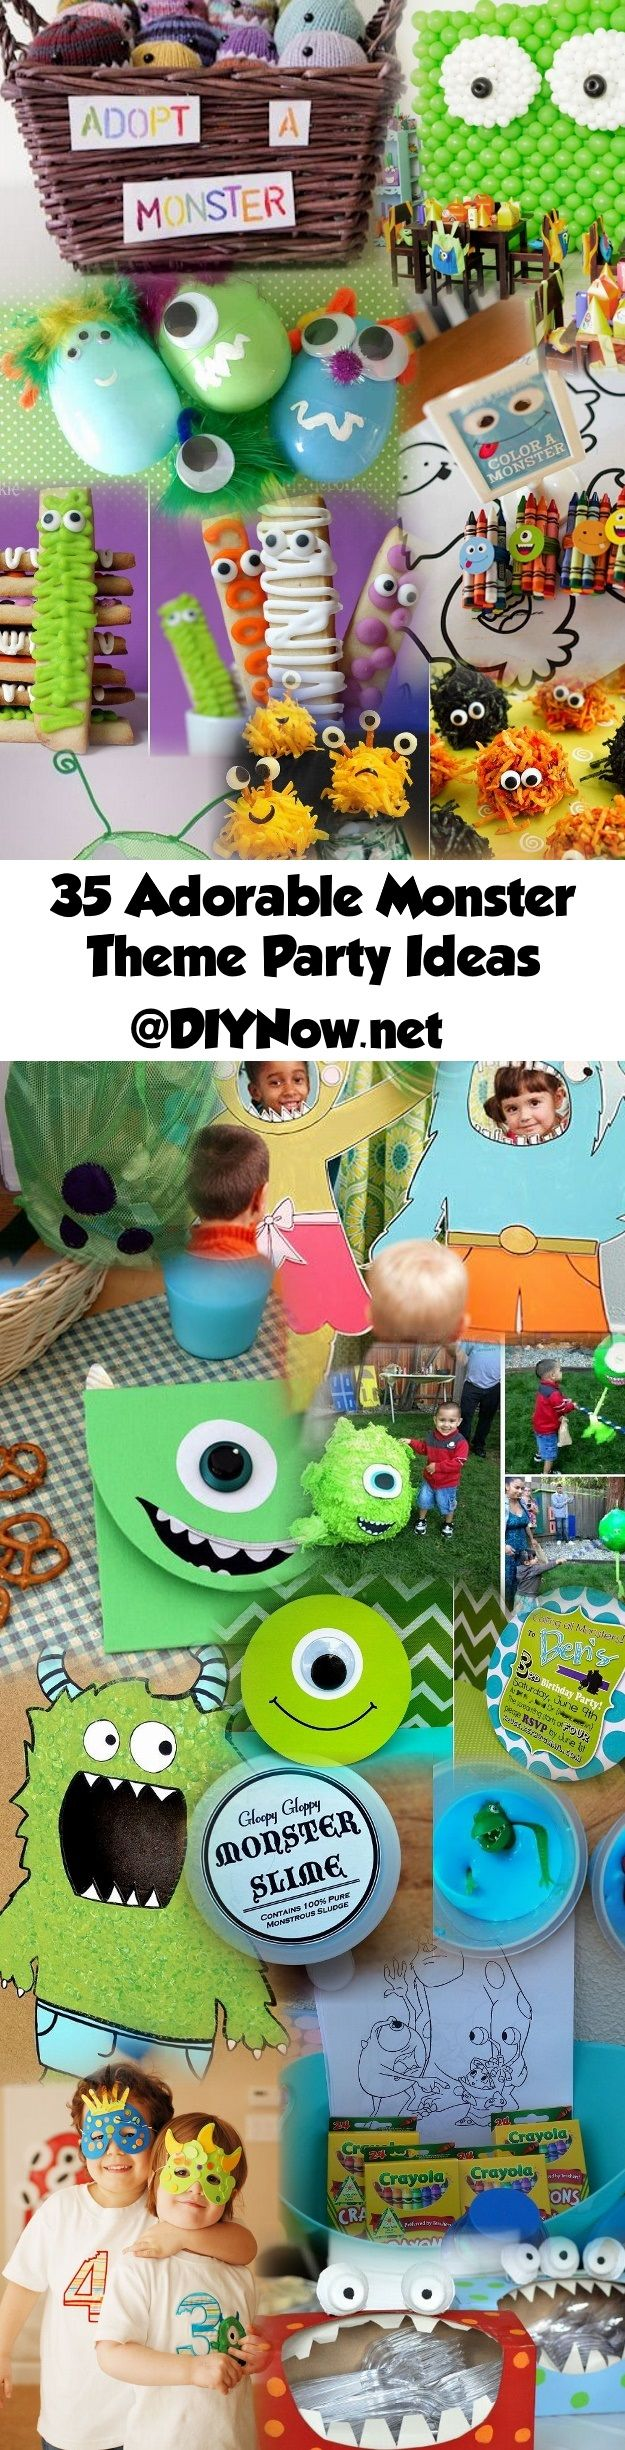 35 Adorable Monster Theme Party Ideas